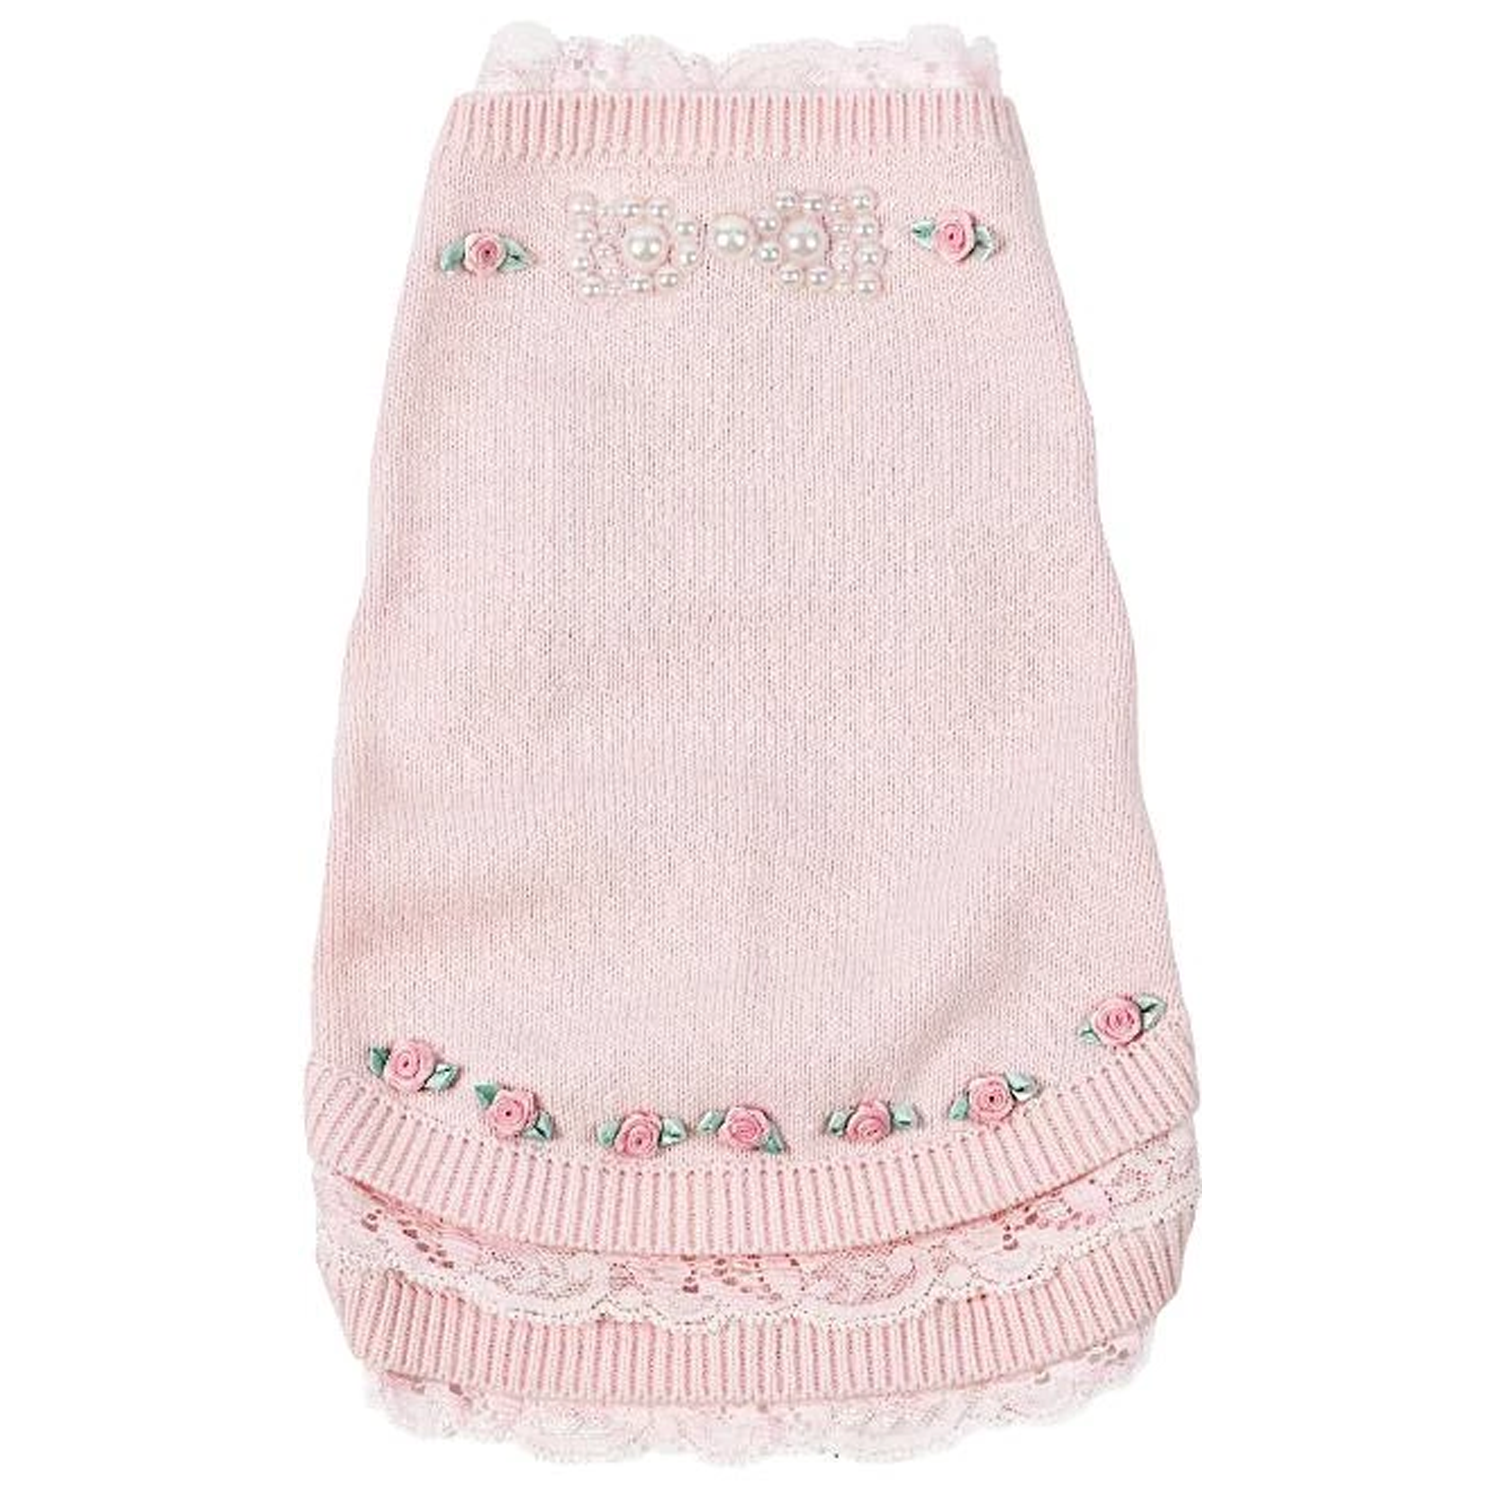 Pearls N' Roses Dog Sweater